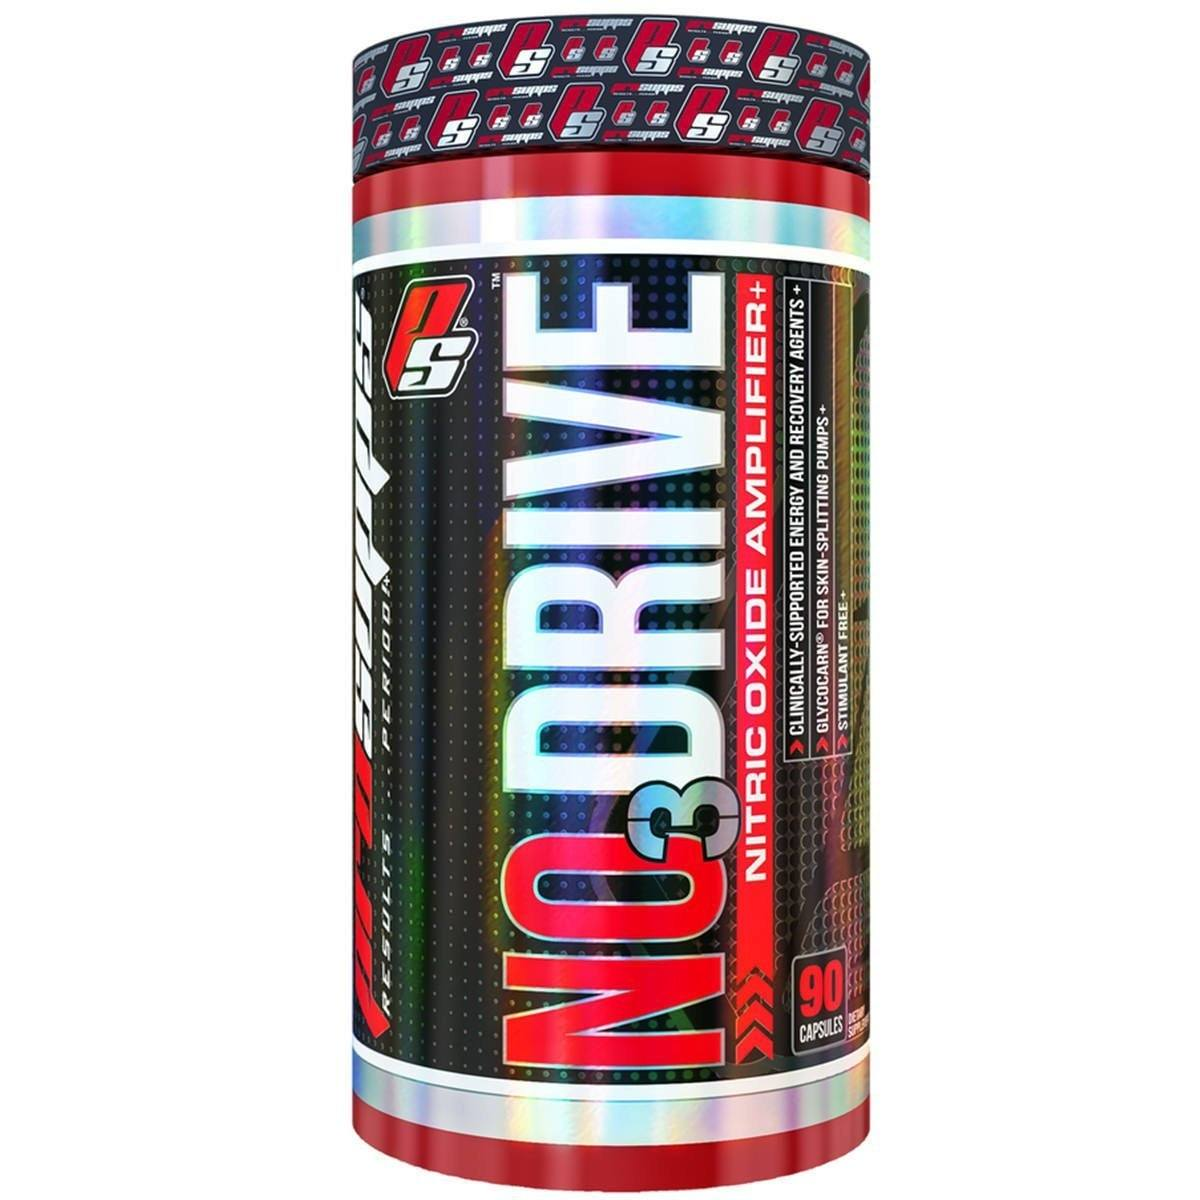 Pro Supps NO3 Drive 90 Caps Pre-workout Pro Supps  (1058950119467)